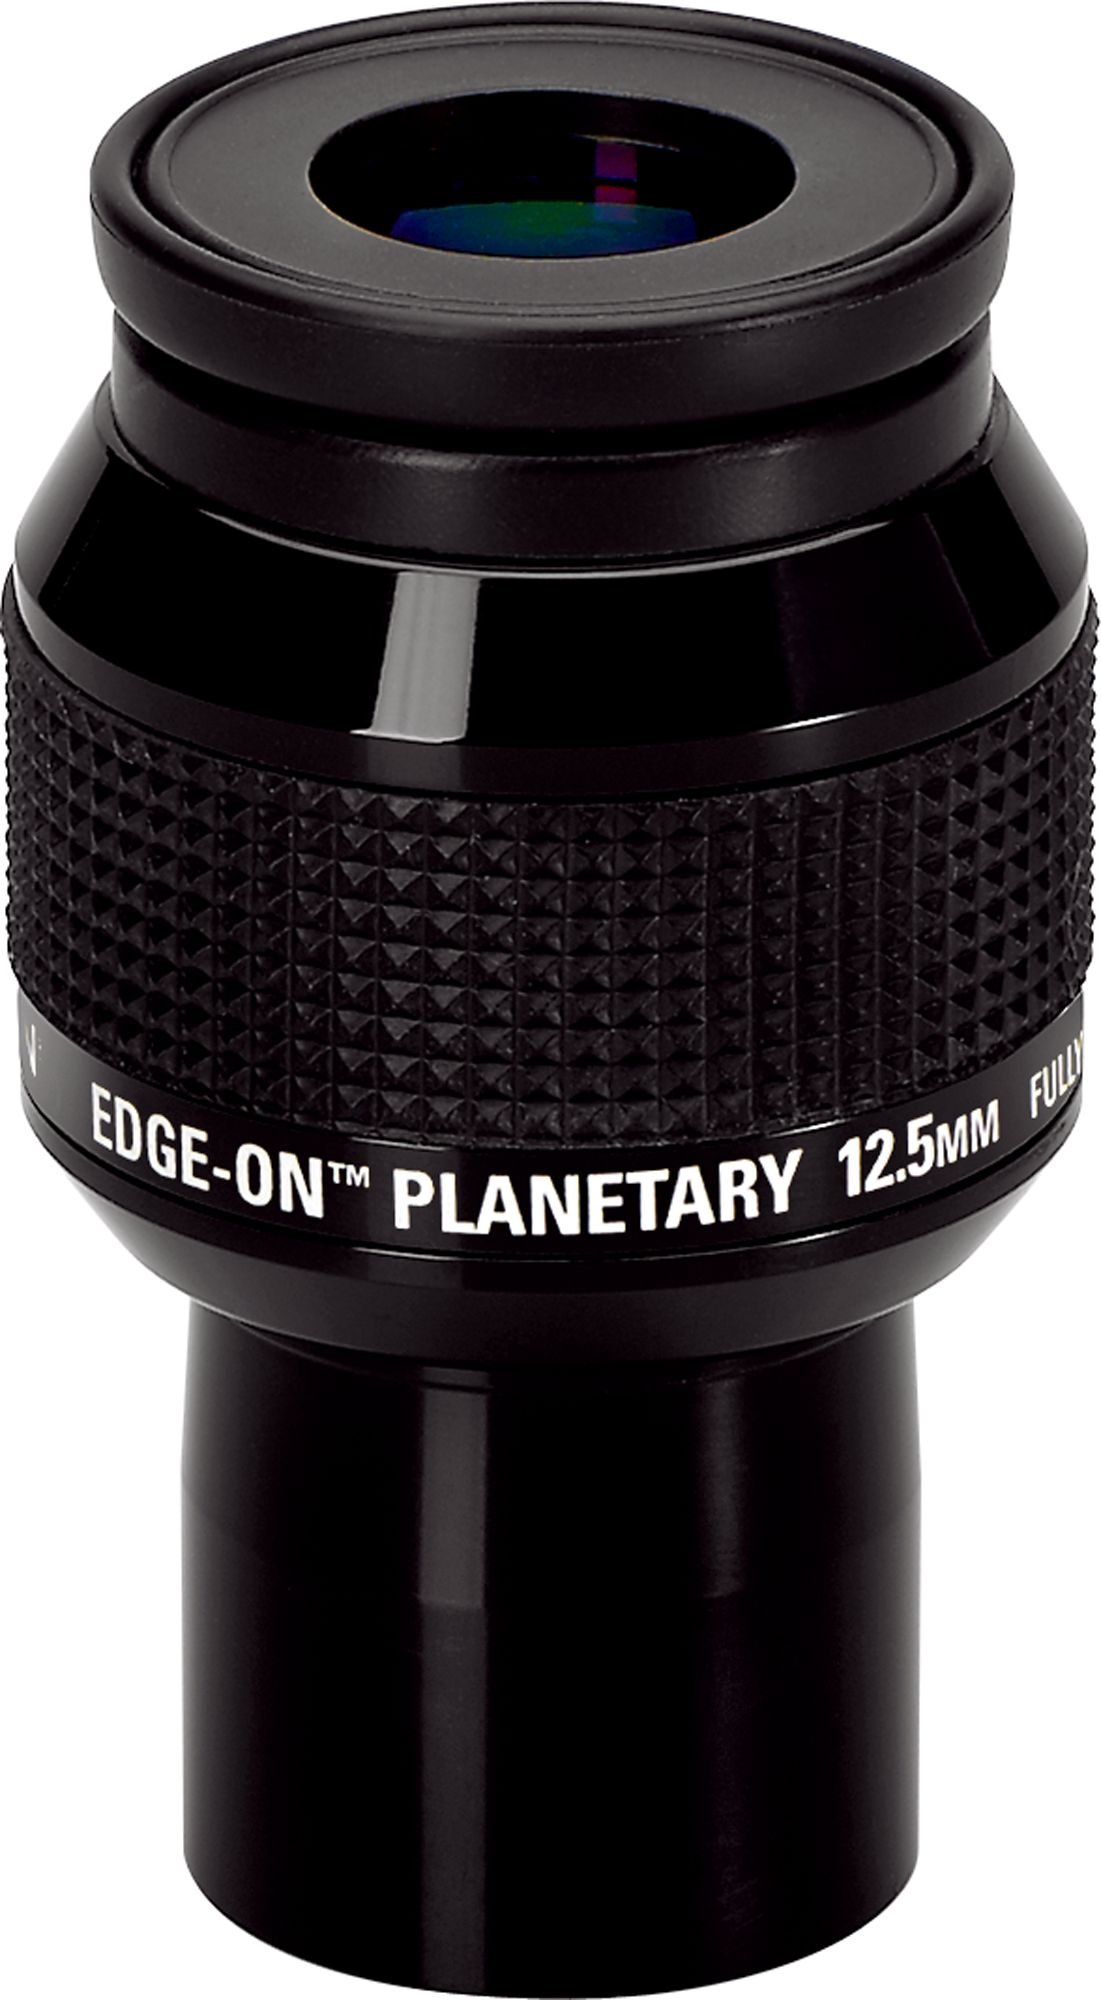 Orion 8882 12.5mm Edge-On Planetary Eyepiece by Orion